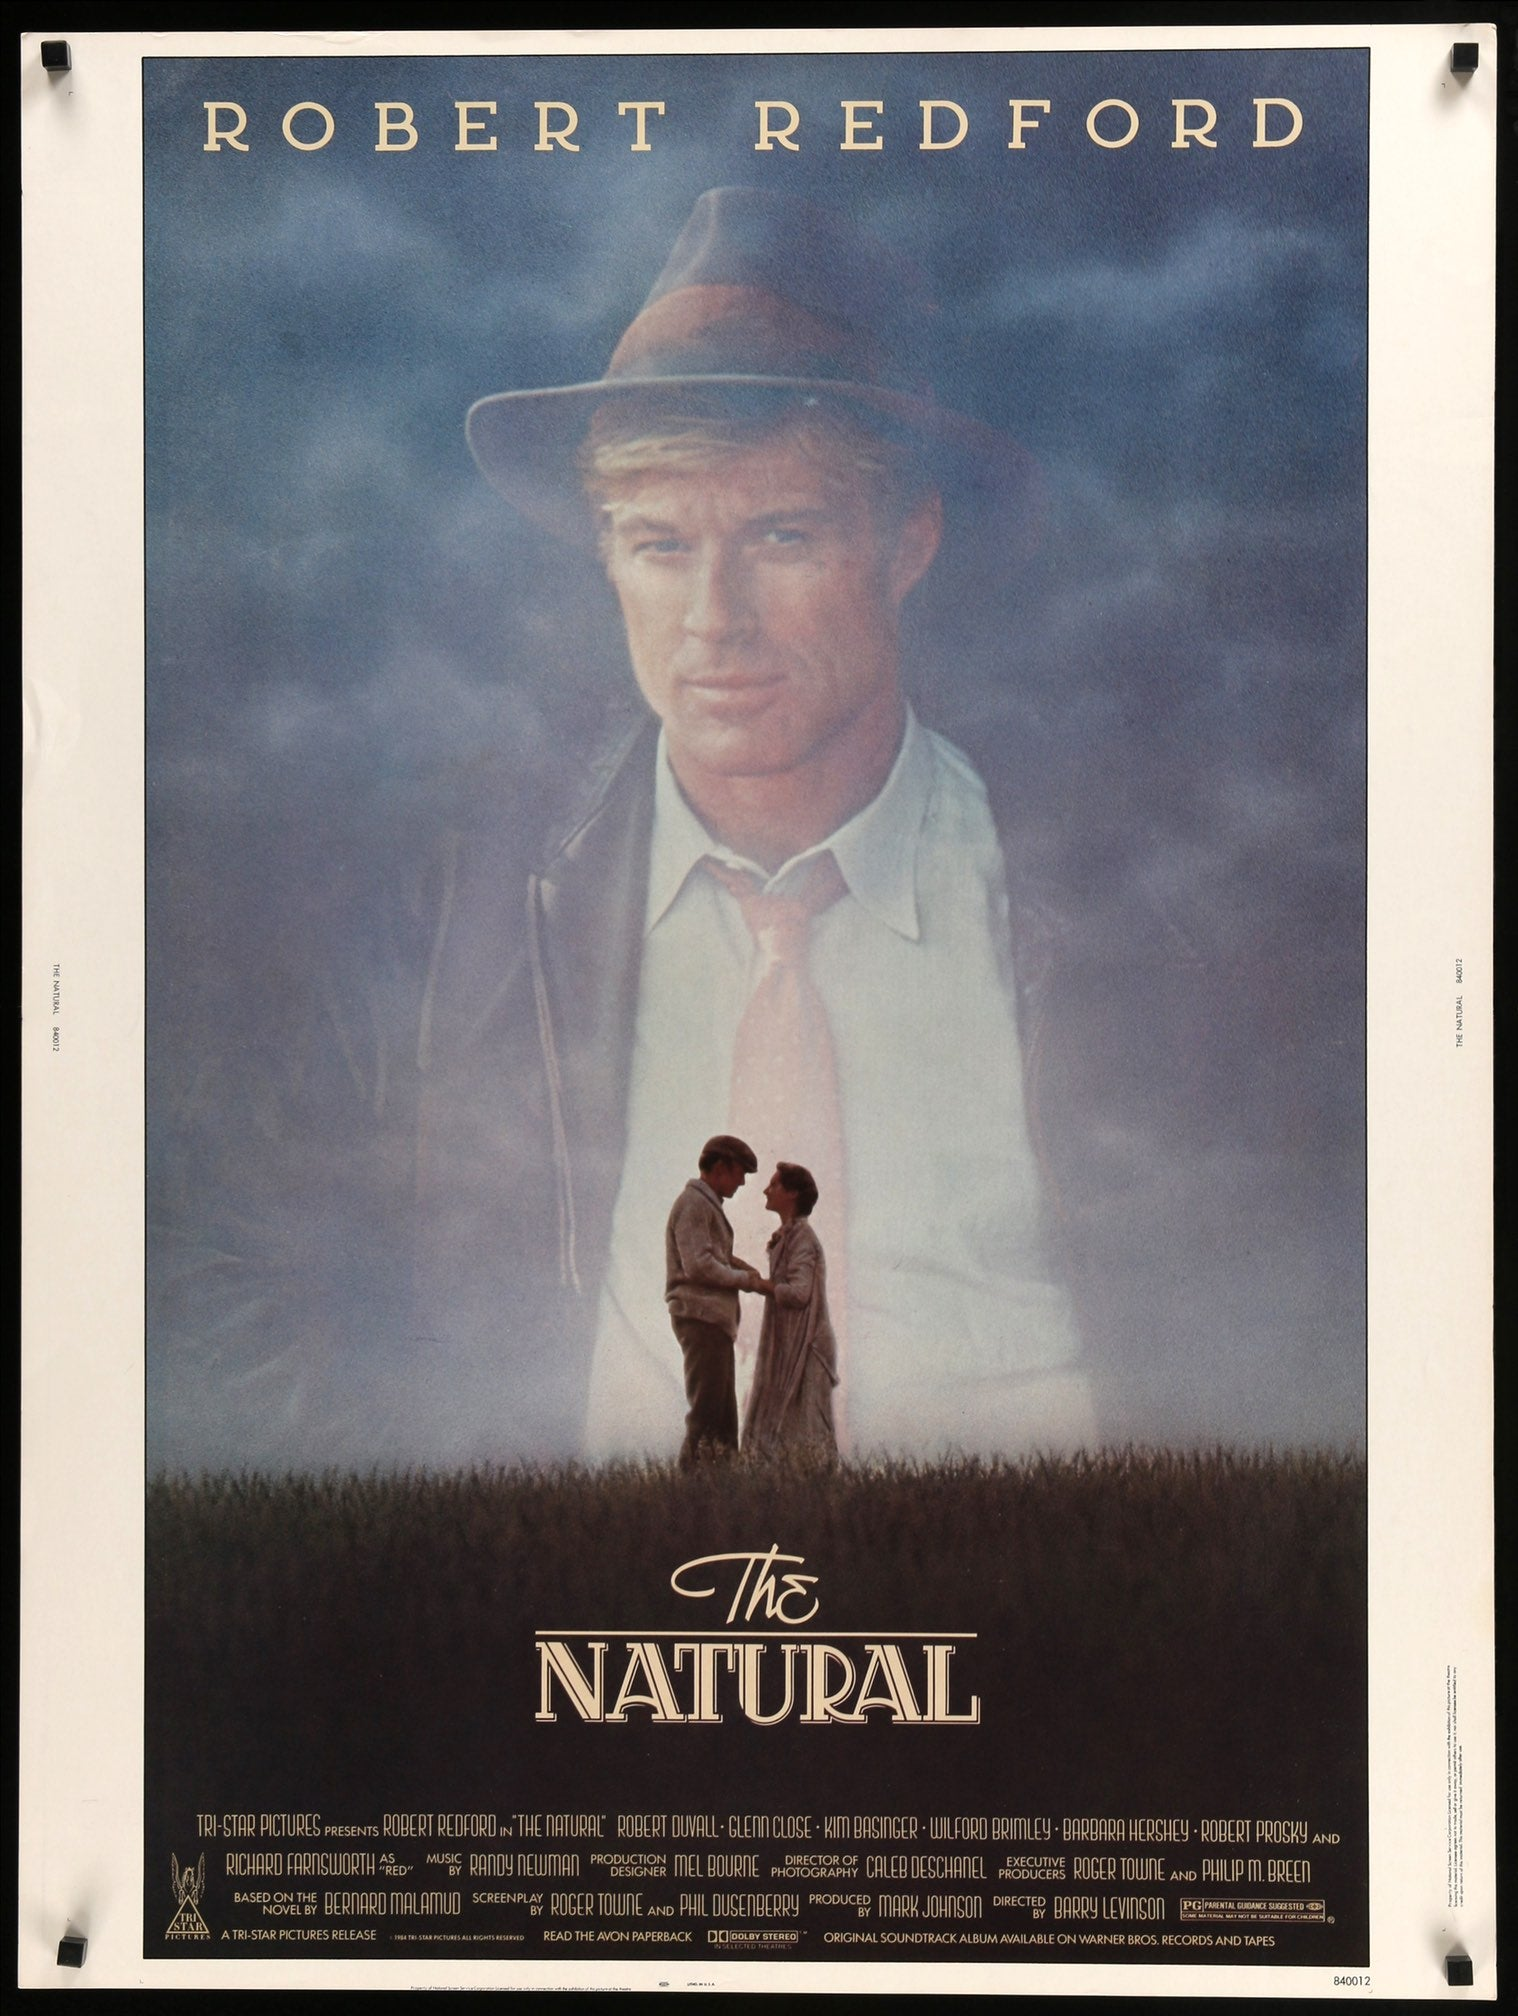 The Natural Movie Poster 24in x 36in